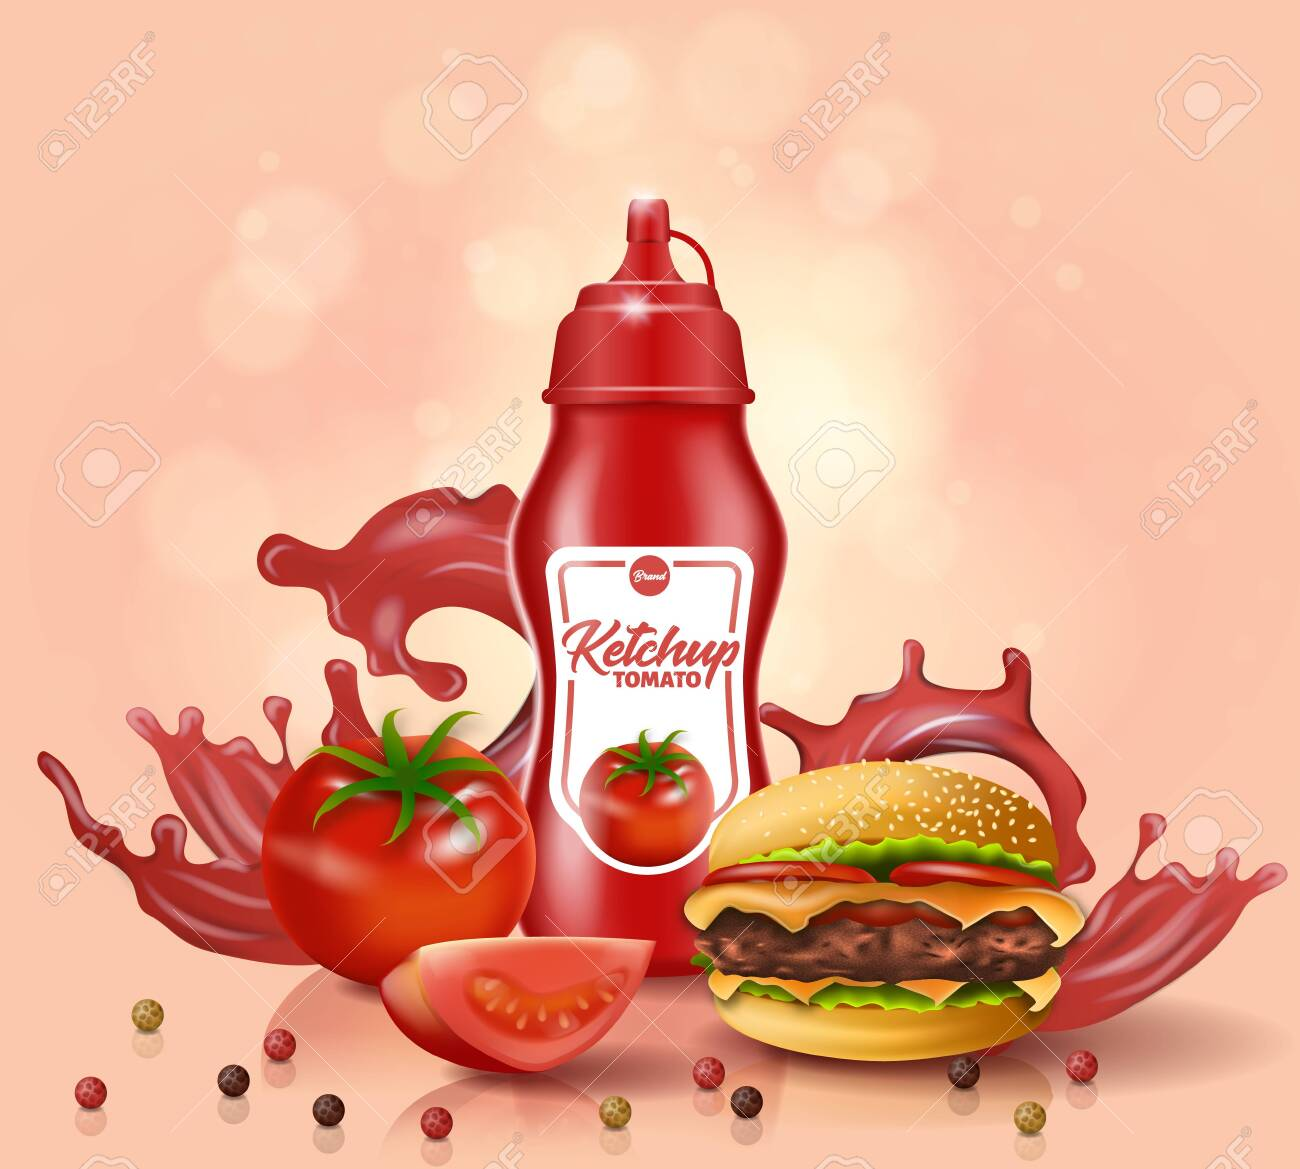 Ketchup Bottle Stand near Fresh Tomato, Burger with Scattered Bell Pepper on Table Surface, with Red Sauce Splash on Pink Background. Advertising Promo for Fast Food, 3D Vector Realistic Illustration - 128748202